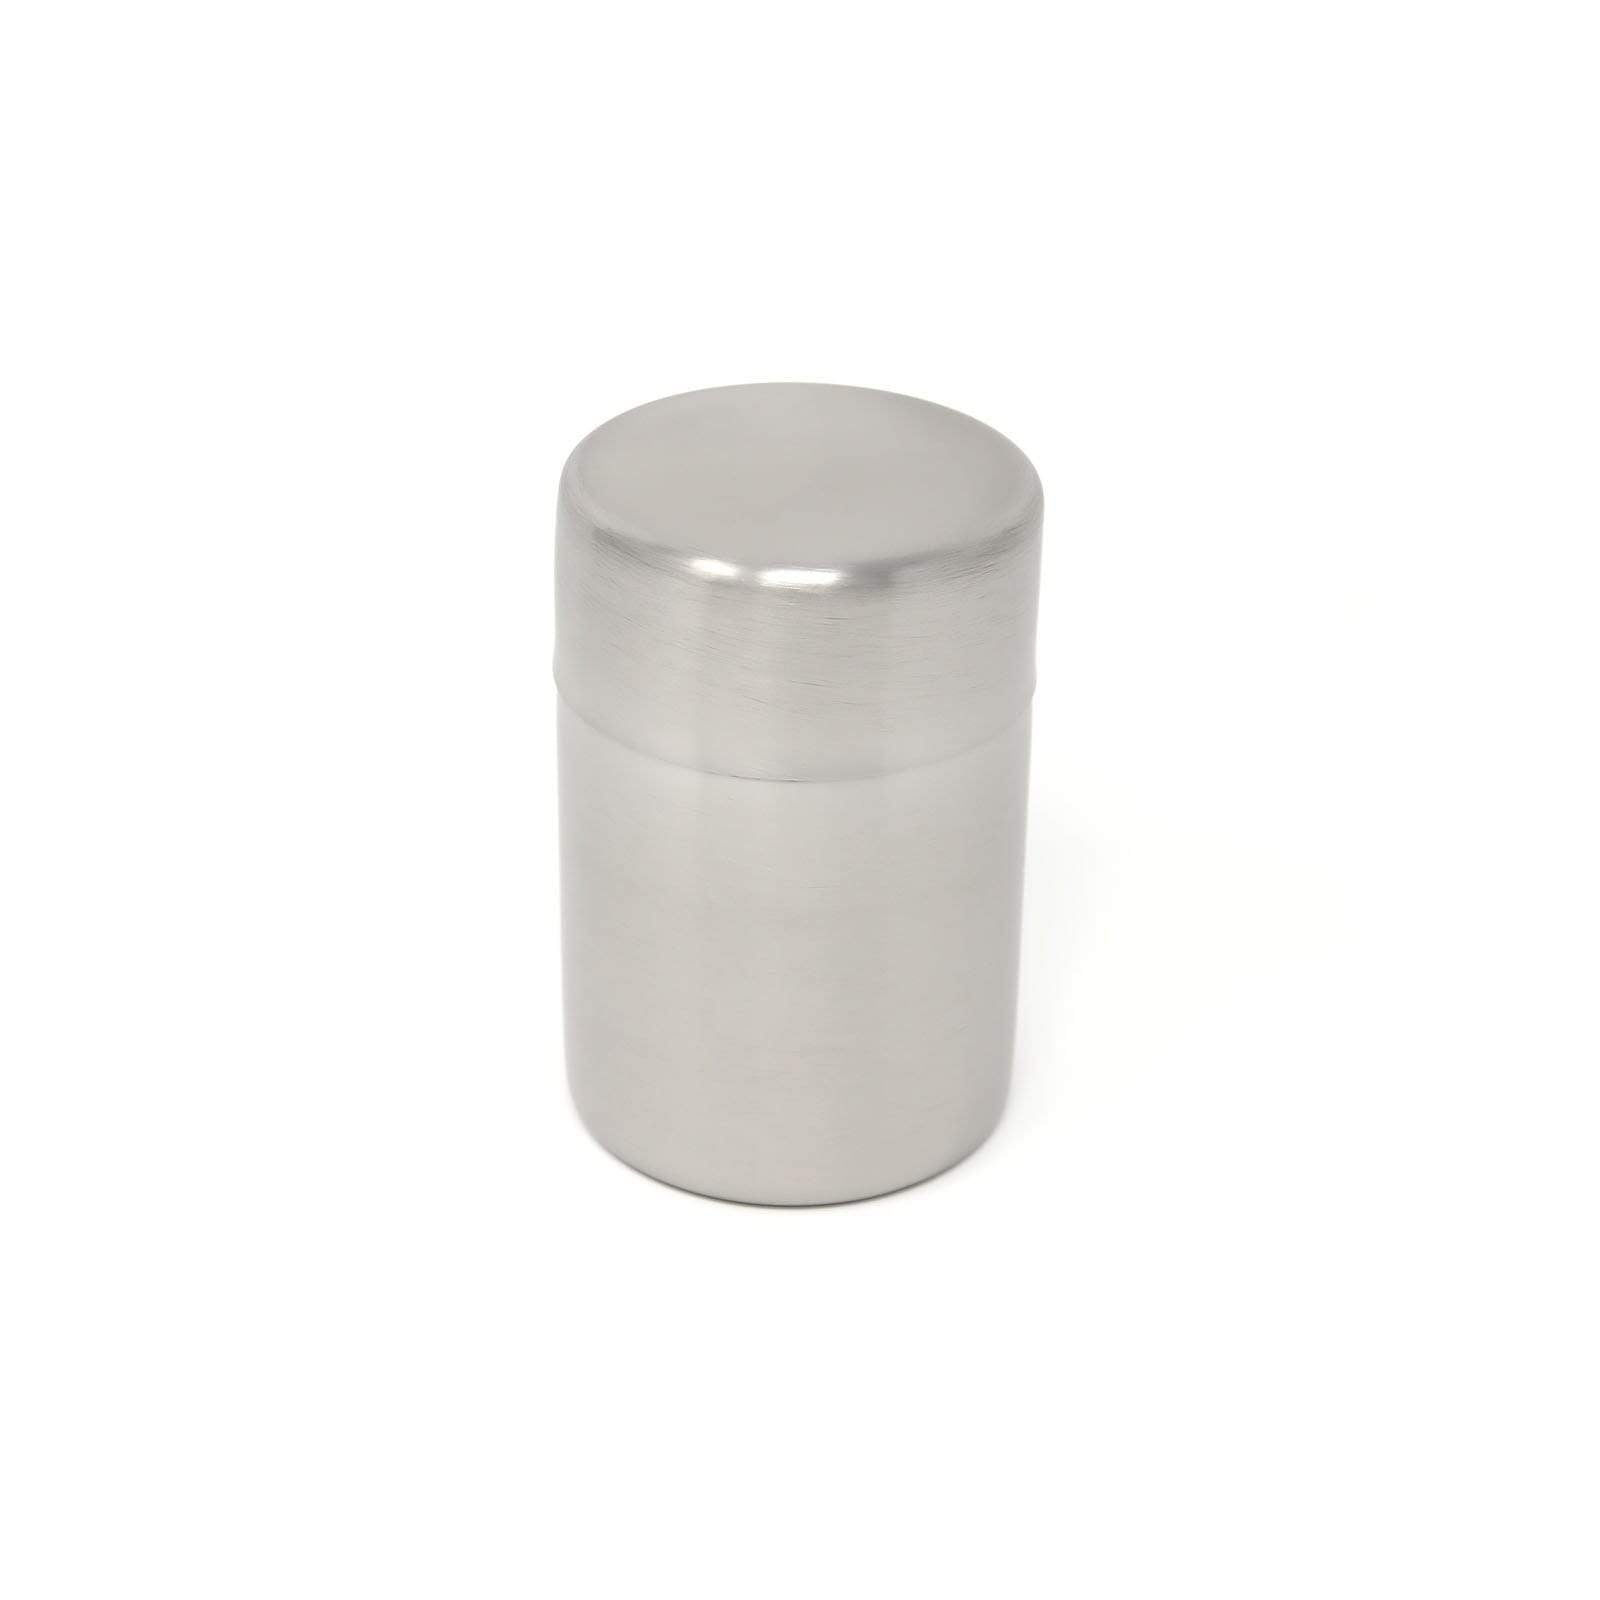 Asahi Stainless Steel Loose Tea Leaf Canister Chazutsu Tea Caddy 200ml with Caddy Spoon Canisters